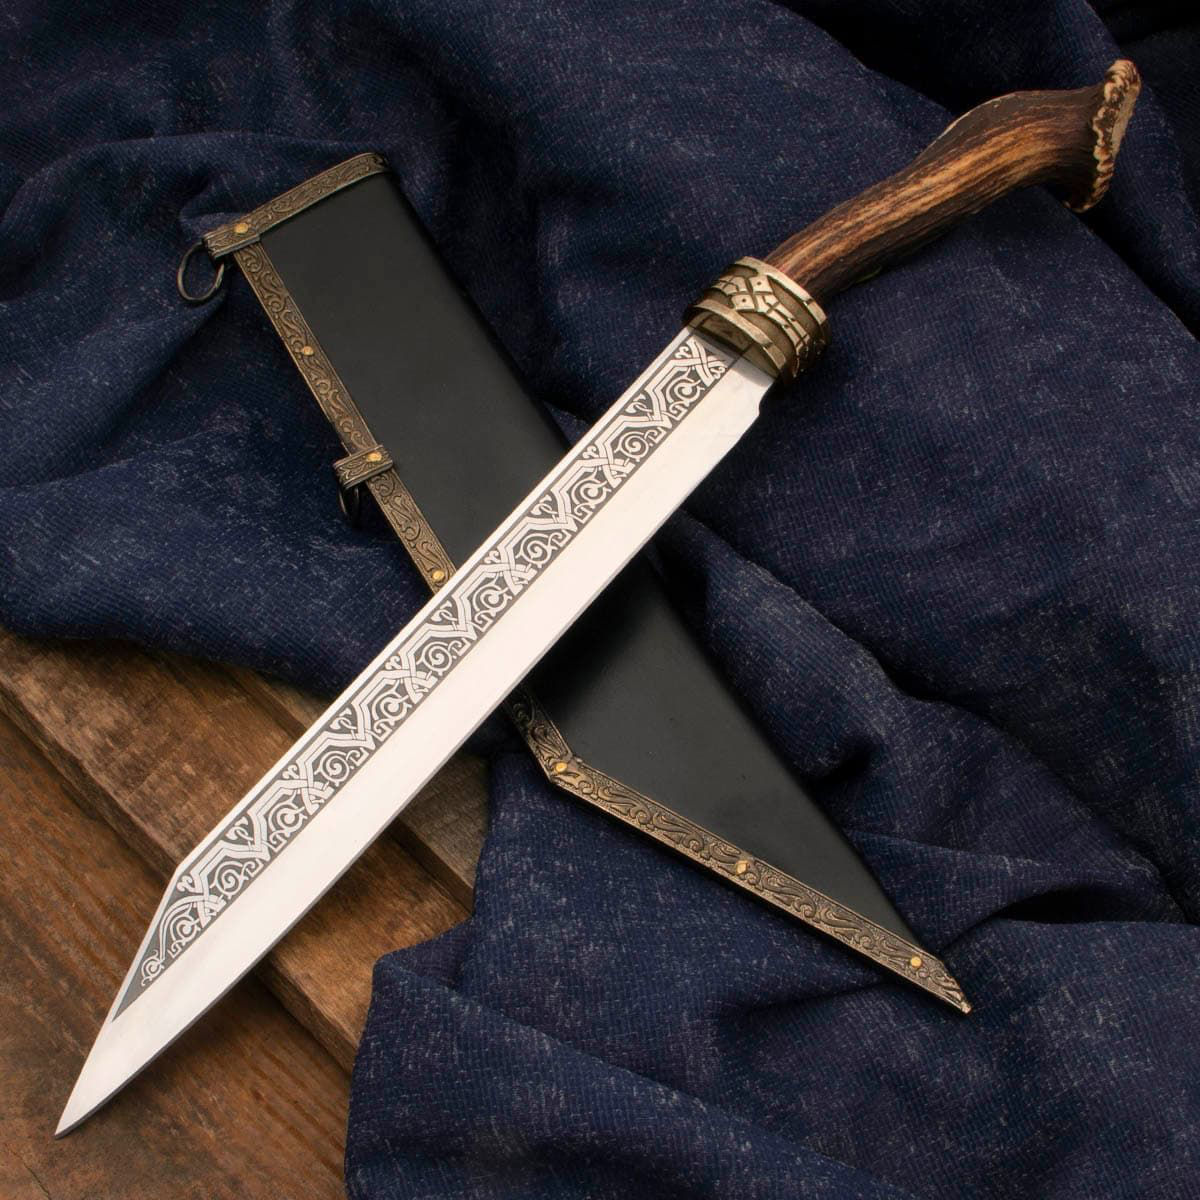 Royal Stag Seax has engraved, sharpened high carbon steel blade, brass guard with Nordic relief and Sambar Stag handle